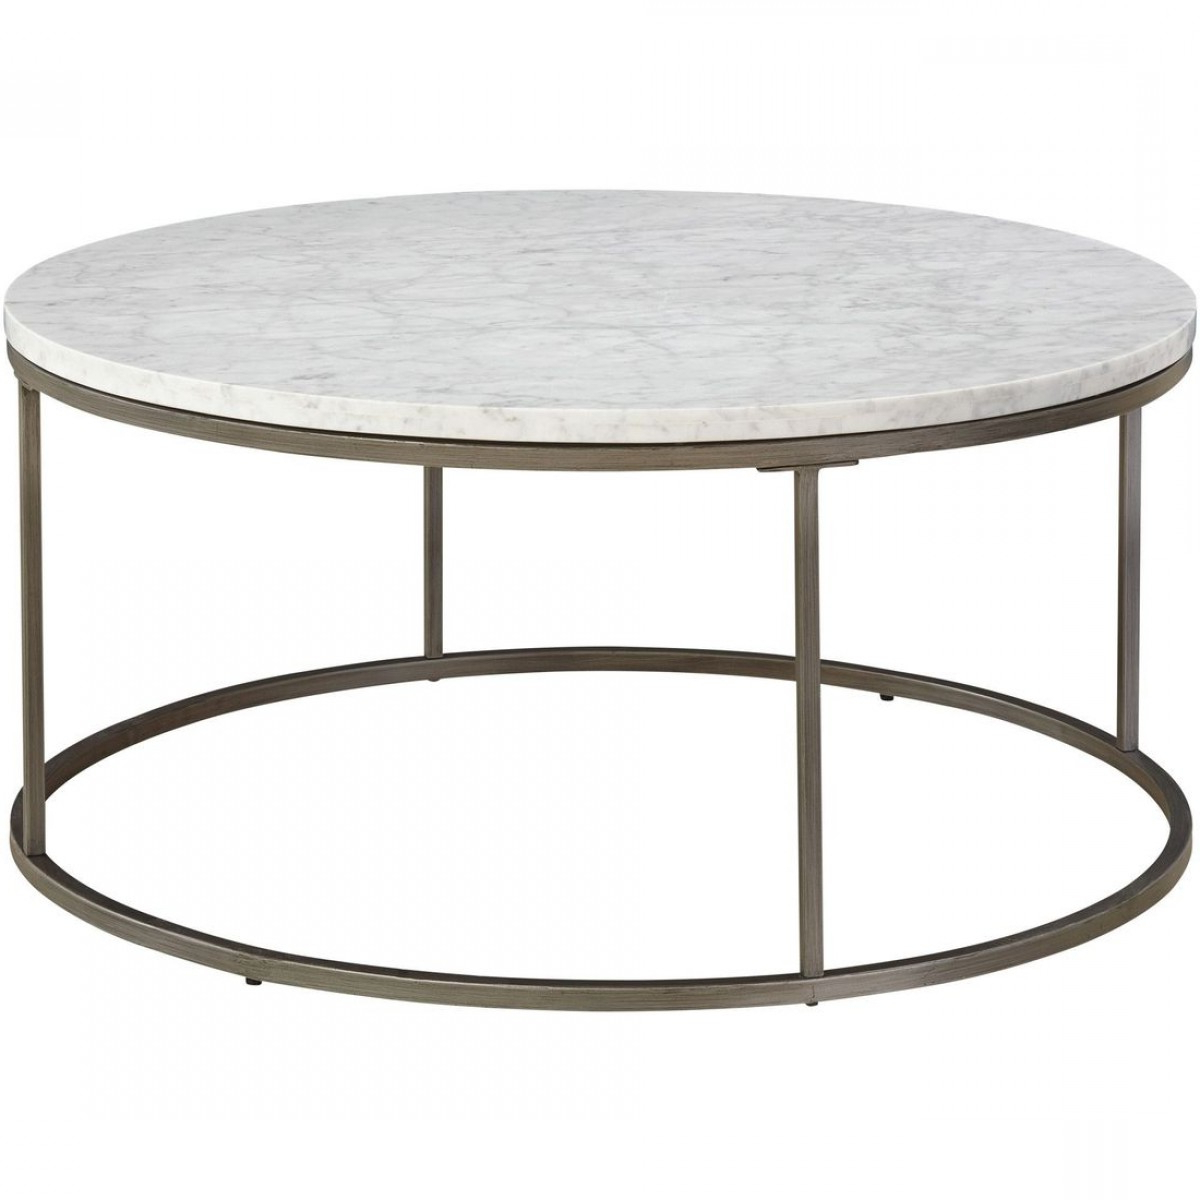 Casana Alana Round Coffee Table With White Marble Top With Best And Newest Parker Oval Marble Coffee Tables (View 2 of 20)